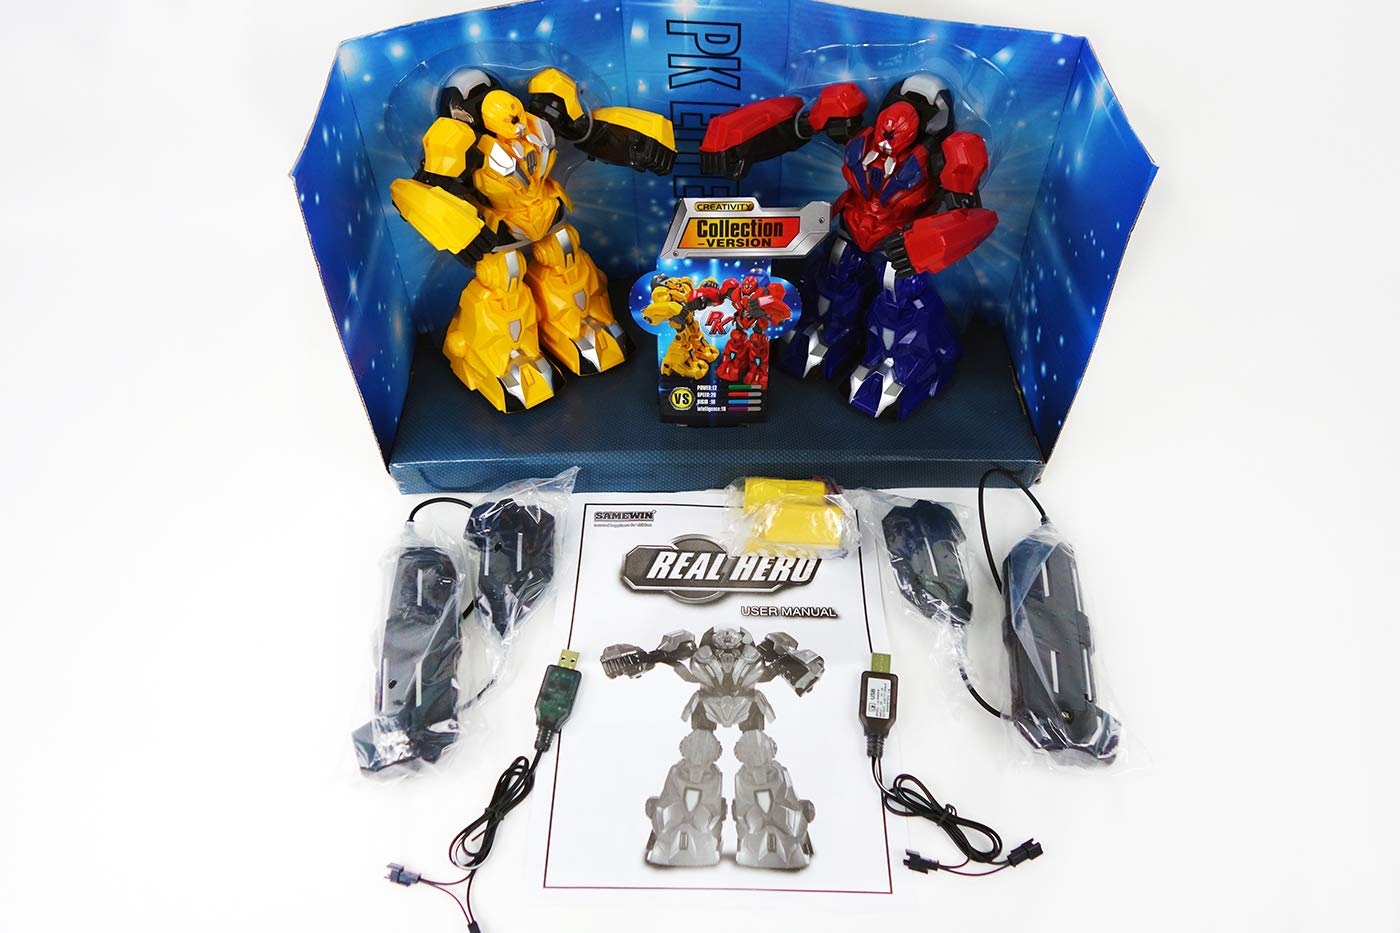 NBD Corp Real Hero- Infrared Fighting Robots A Fun Toy For Boys And Girls This Is A Very Exciting Toy For Kids This Really Rad Robot Is A Super Fun Boxing Robot And The Hero You've Been Looking For by NBD Corp (Image #6)